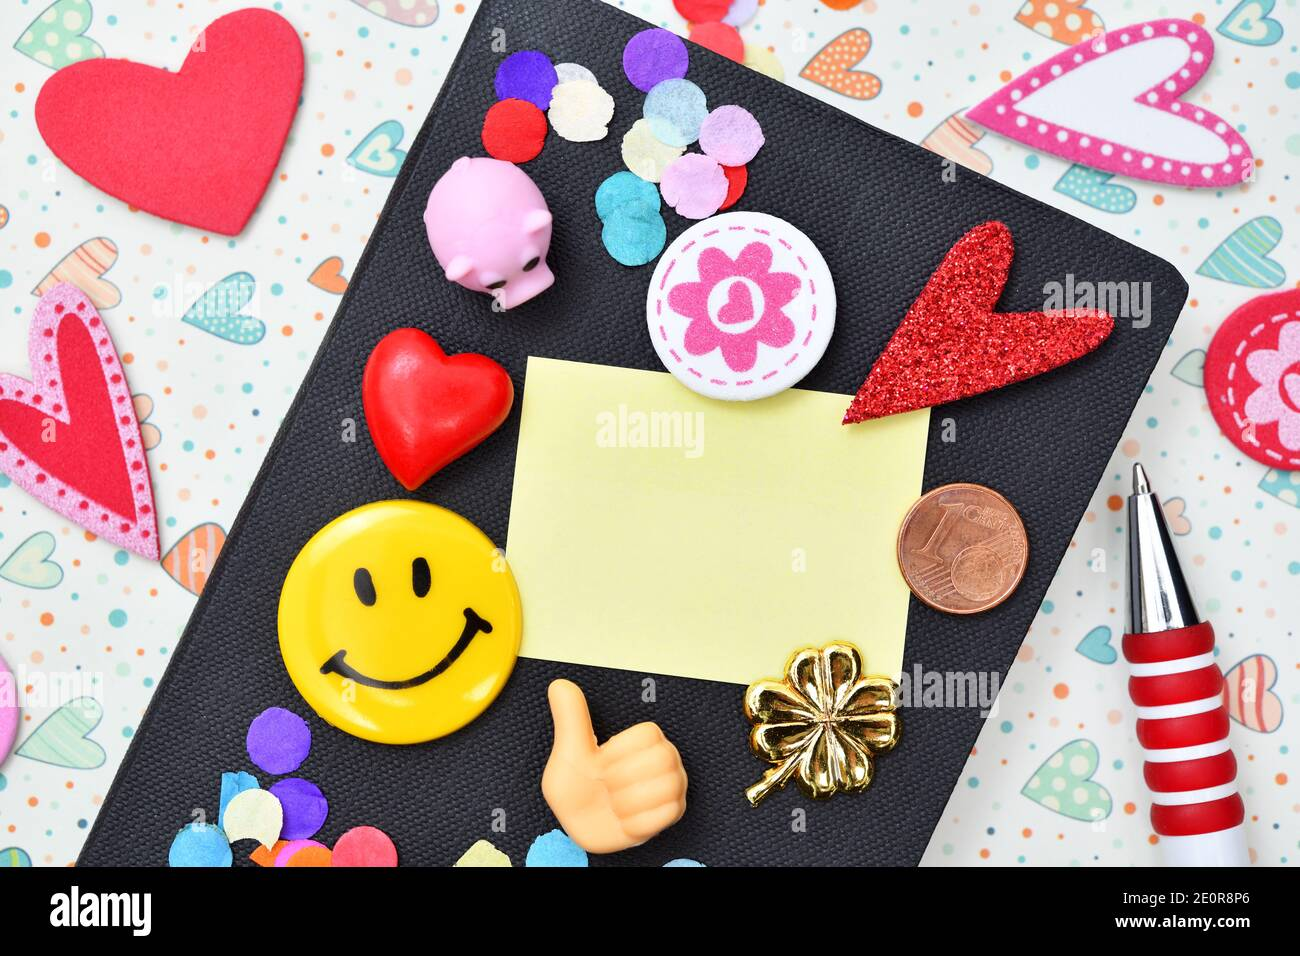 Calendar And Note, New Years Resolutions Stock Photo